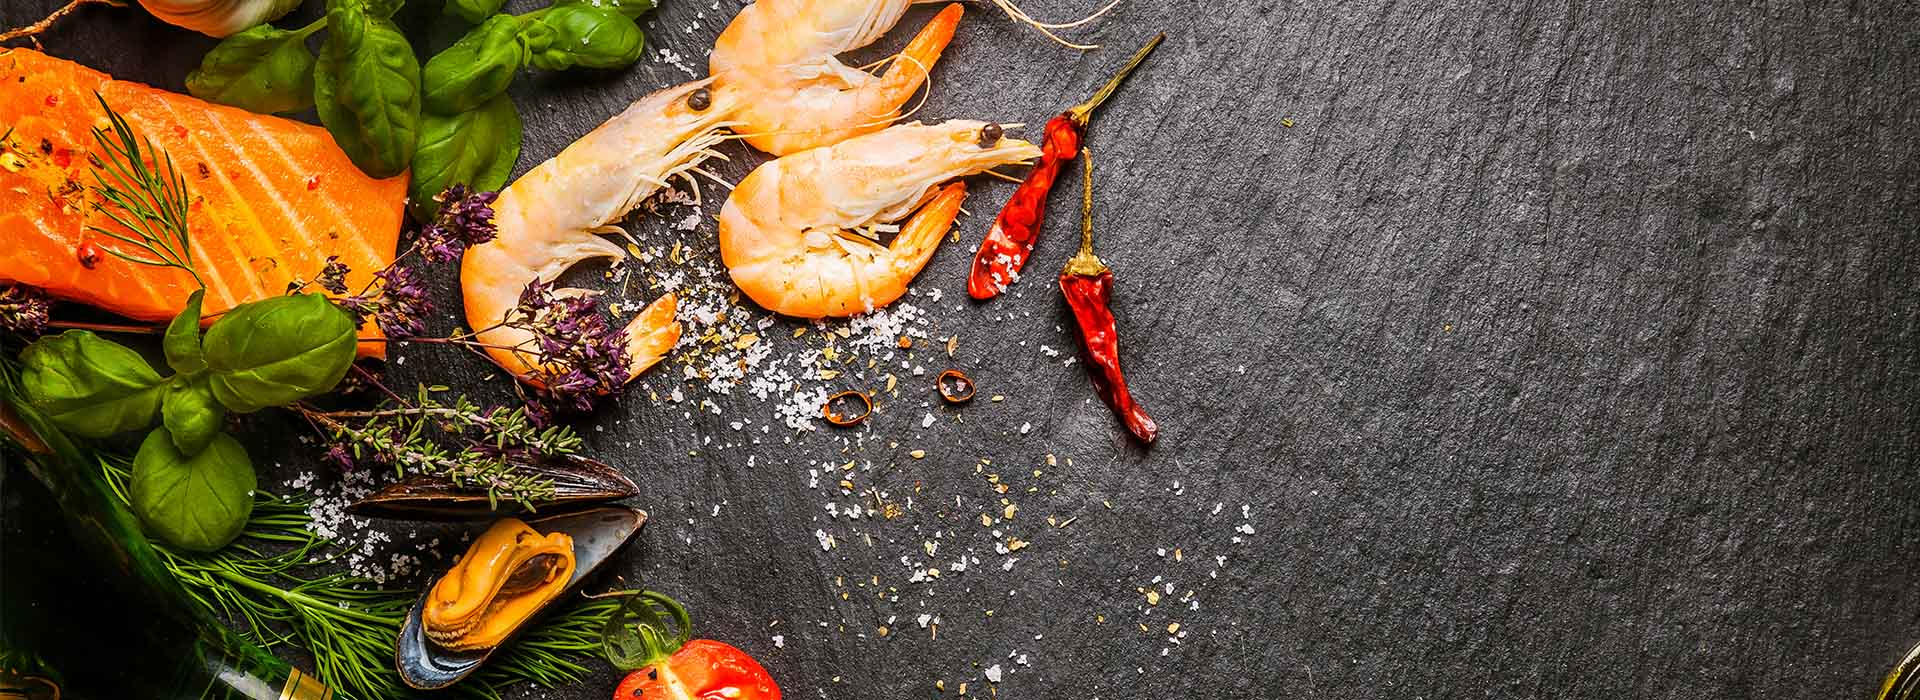 Shrimps and chilies on a chopping board